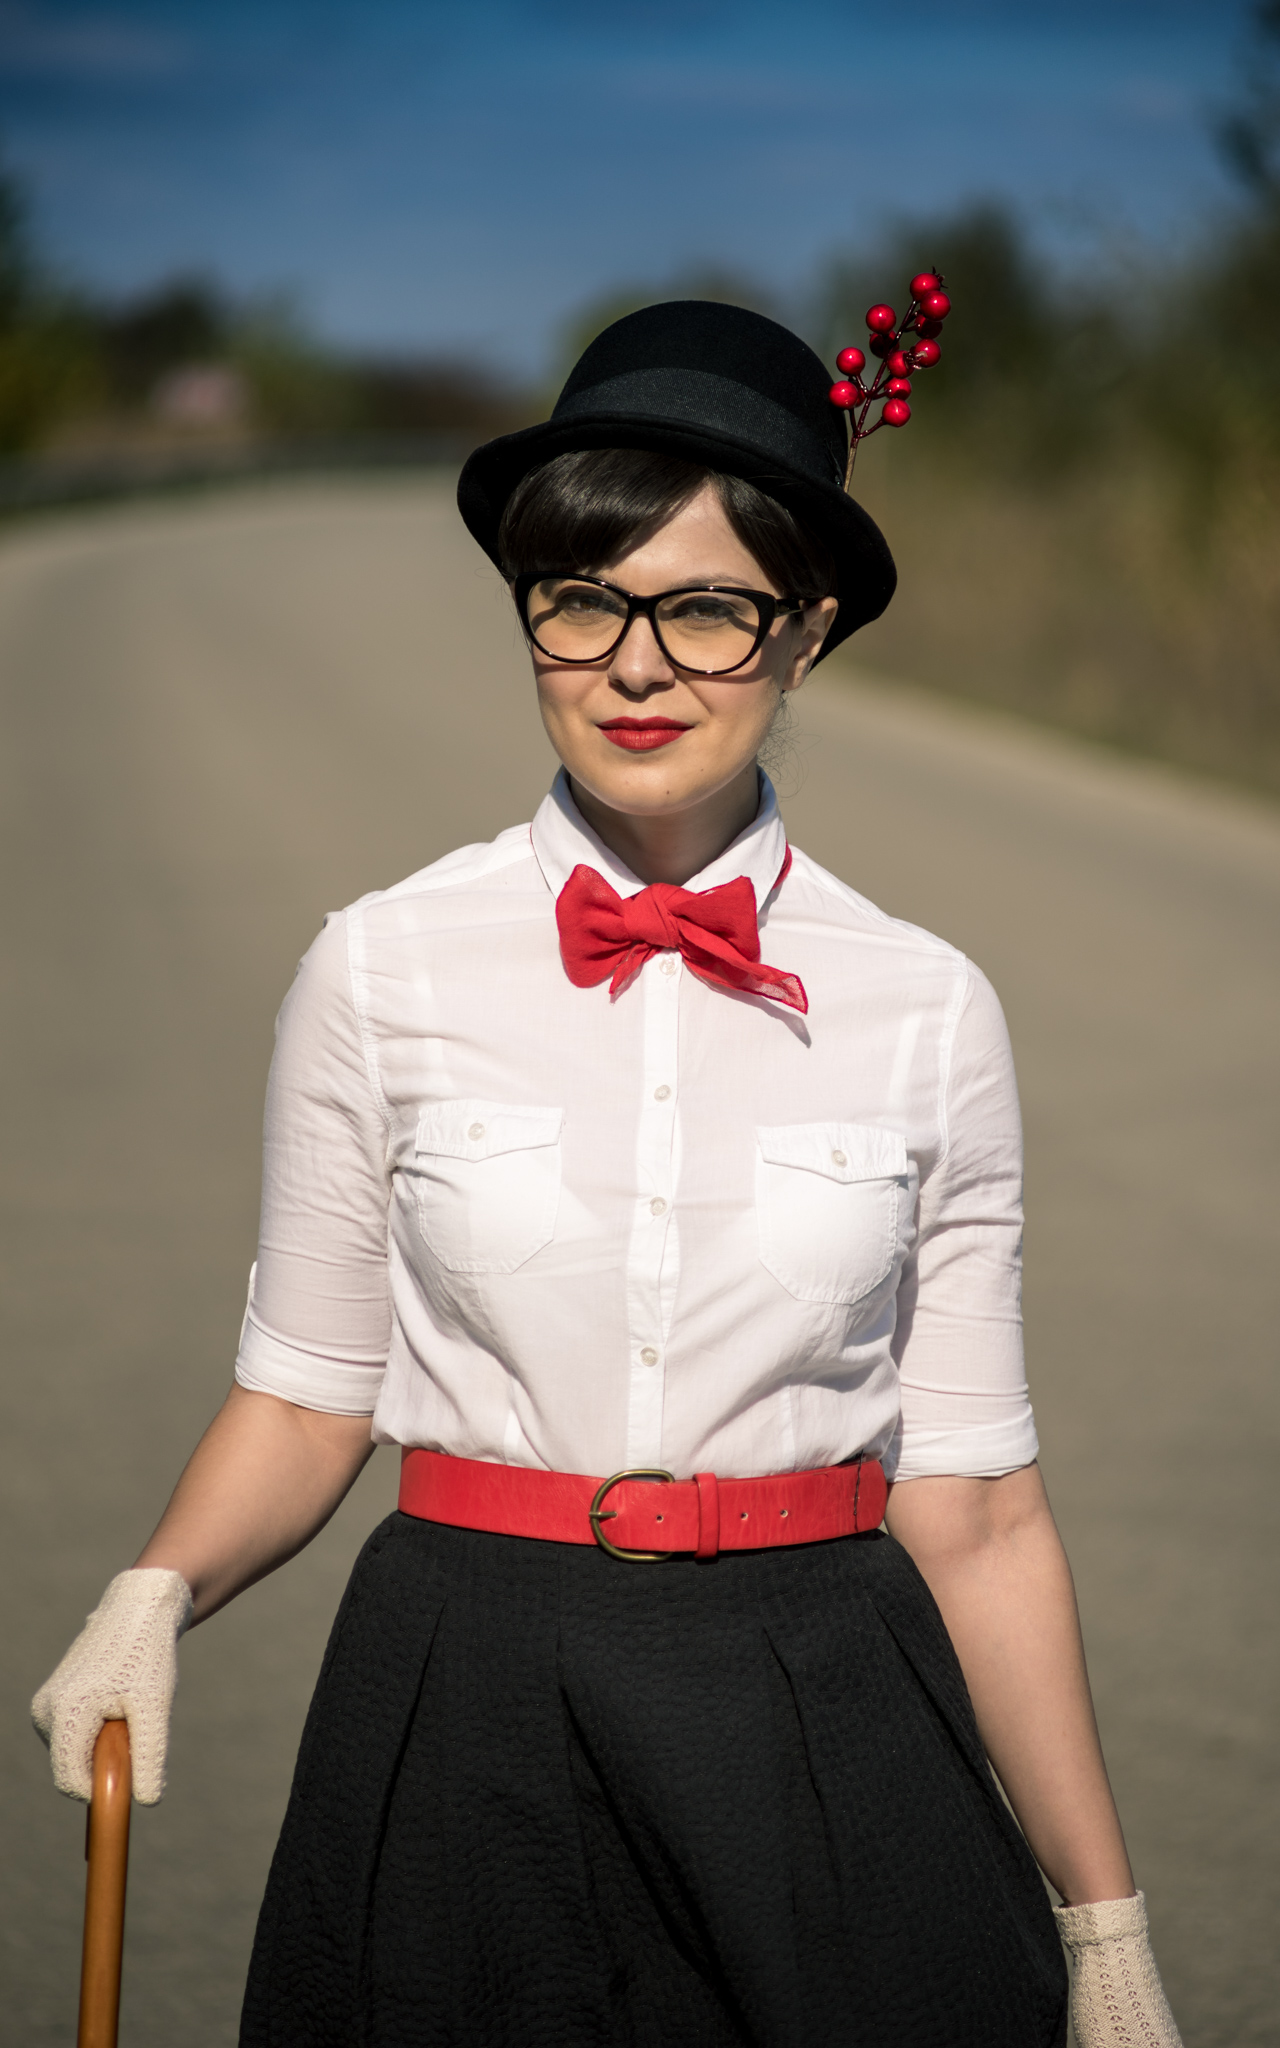 Easy DIY Halloween Costume Mary Poppins white shirt terranova black midi skirt H&M black flats H&M red vintage bag black umbrella tall hat cat eye glasses red belt photoshoot flying